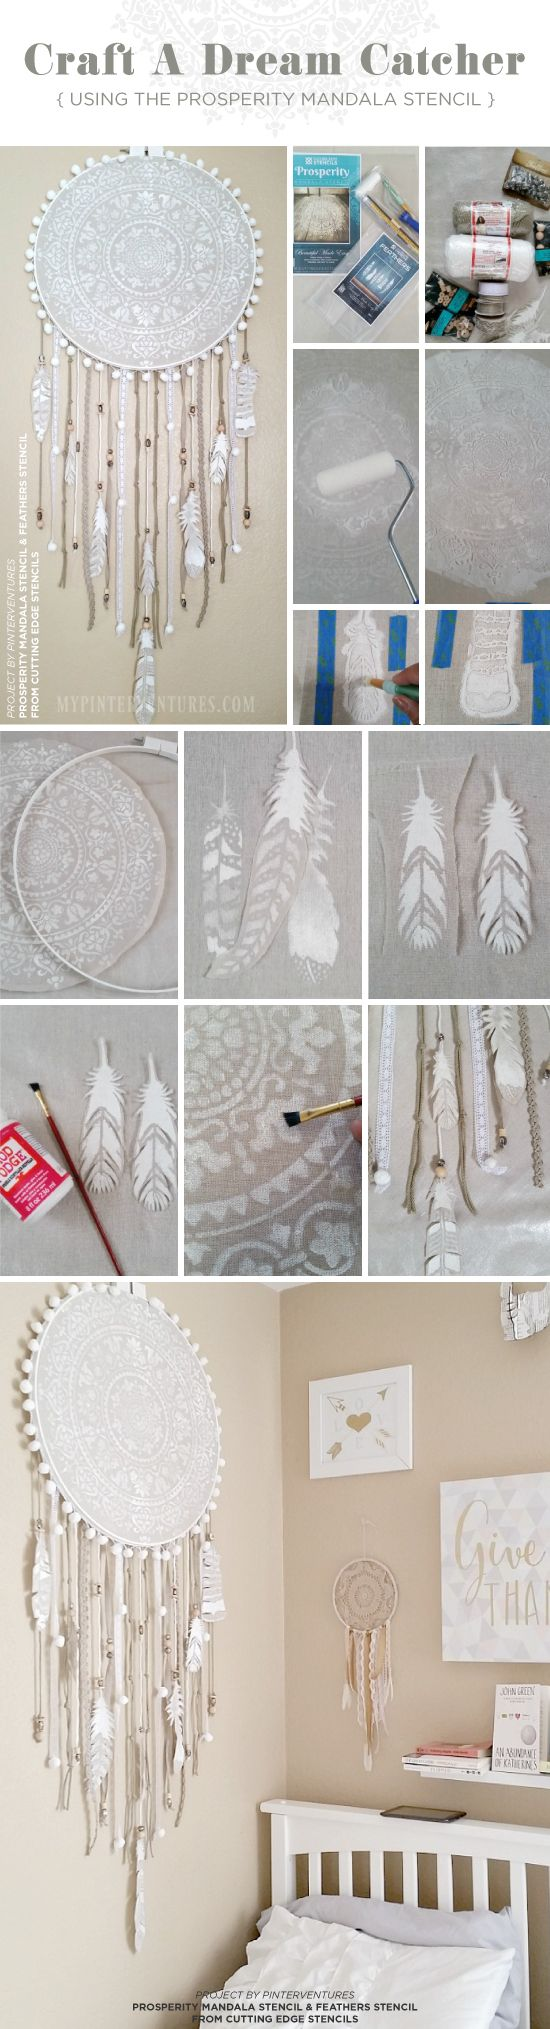 25 unique mandala stencils ideas on pinterest cutting edge learn how to stencil a dream catcher craft using the prosperity mandala stencil from cutting edge amipublicfo Images